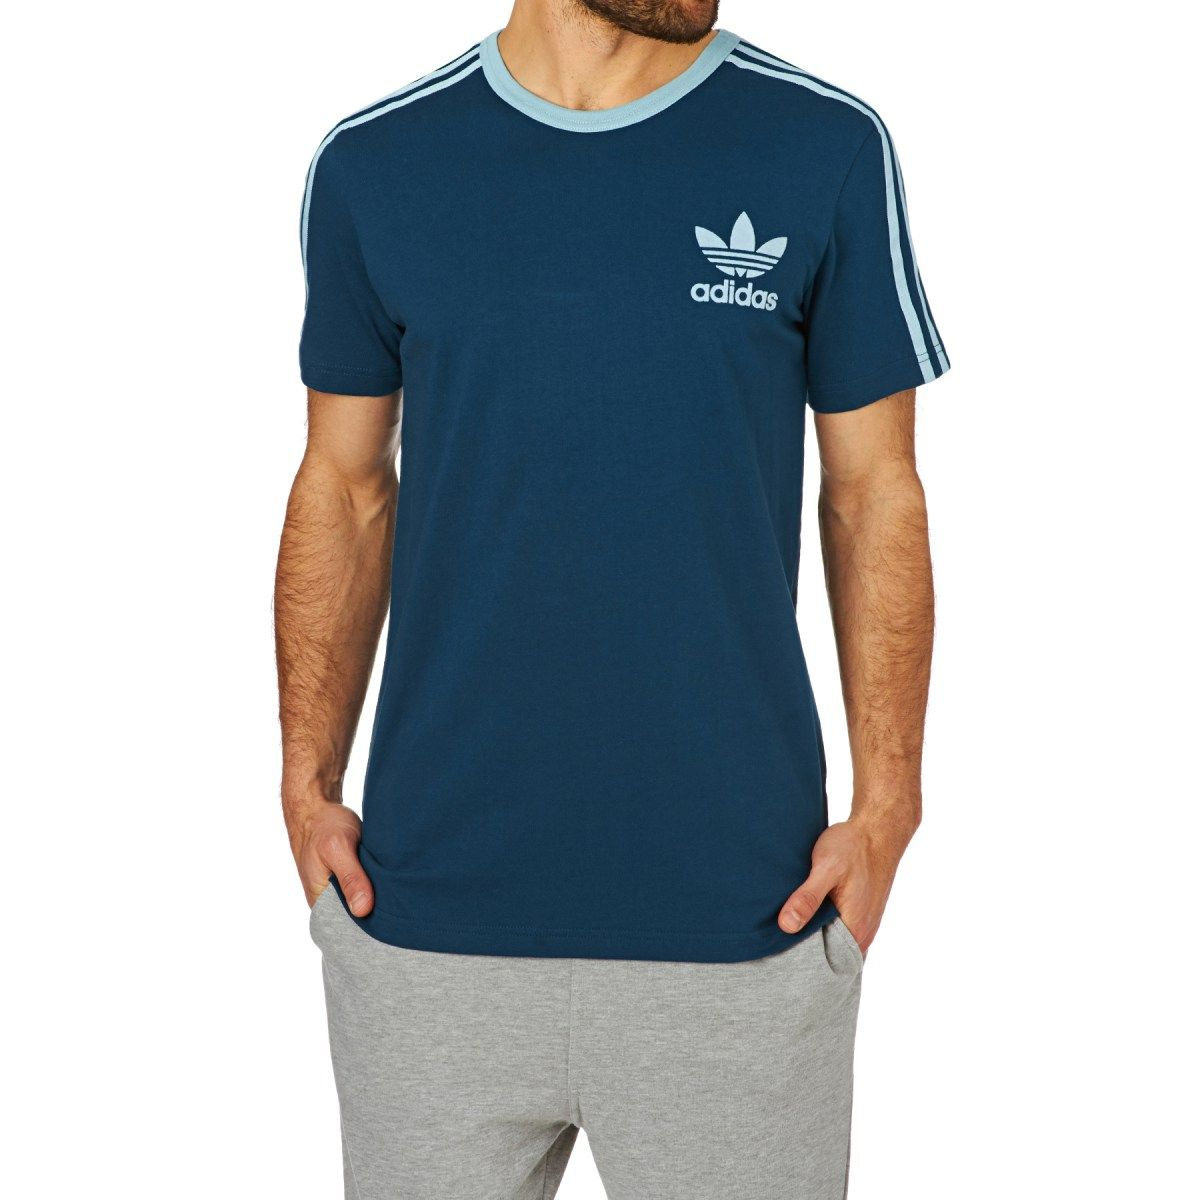 Men's Adidas Originals T shirts Adidas Originals Adicolour